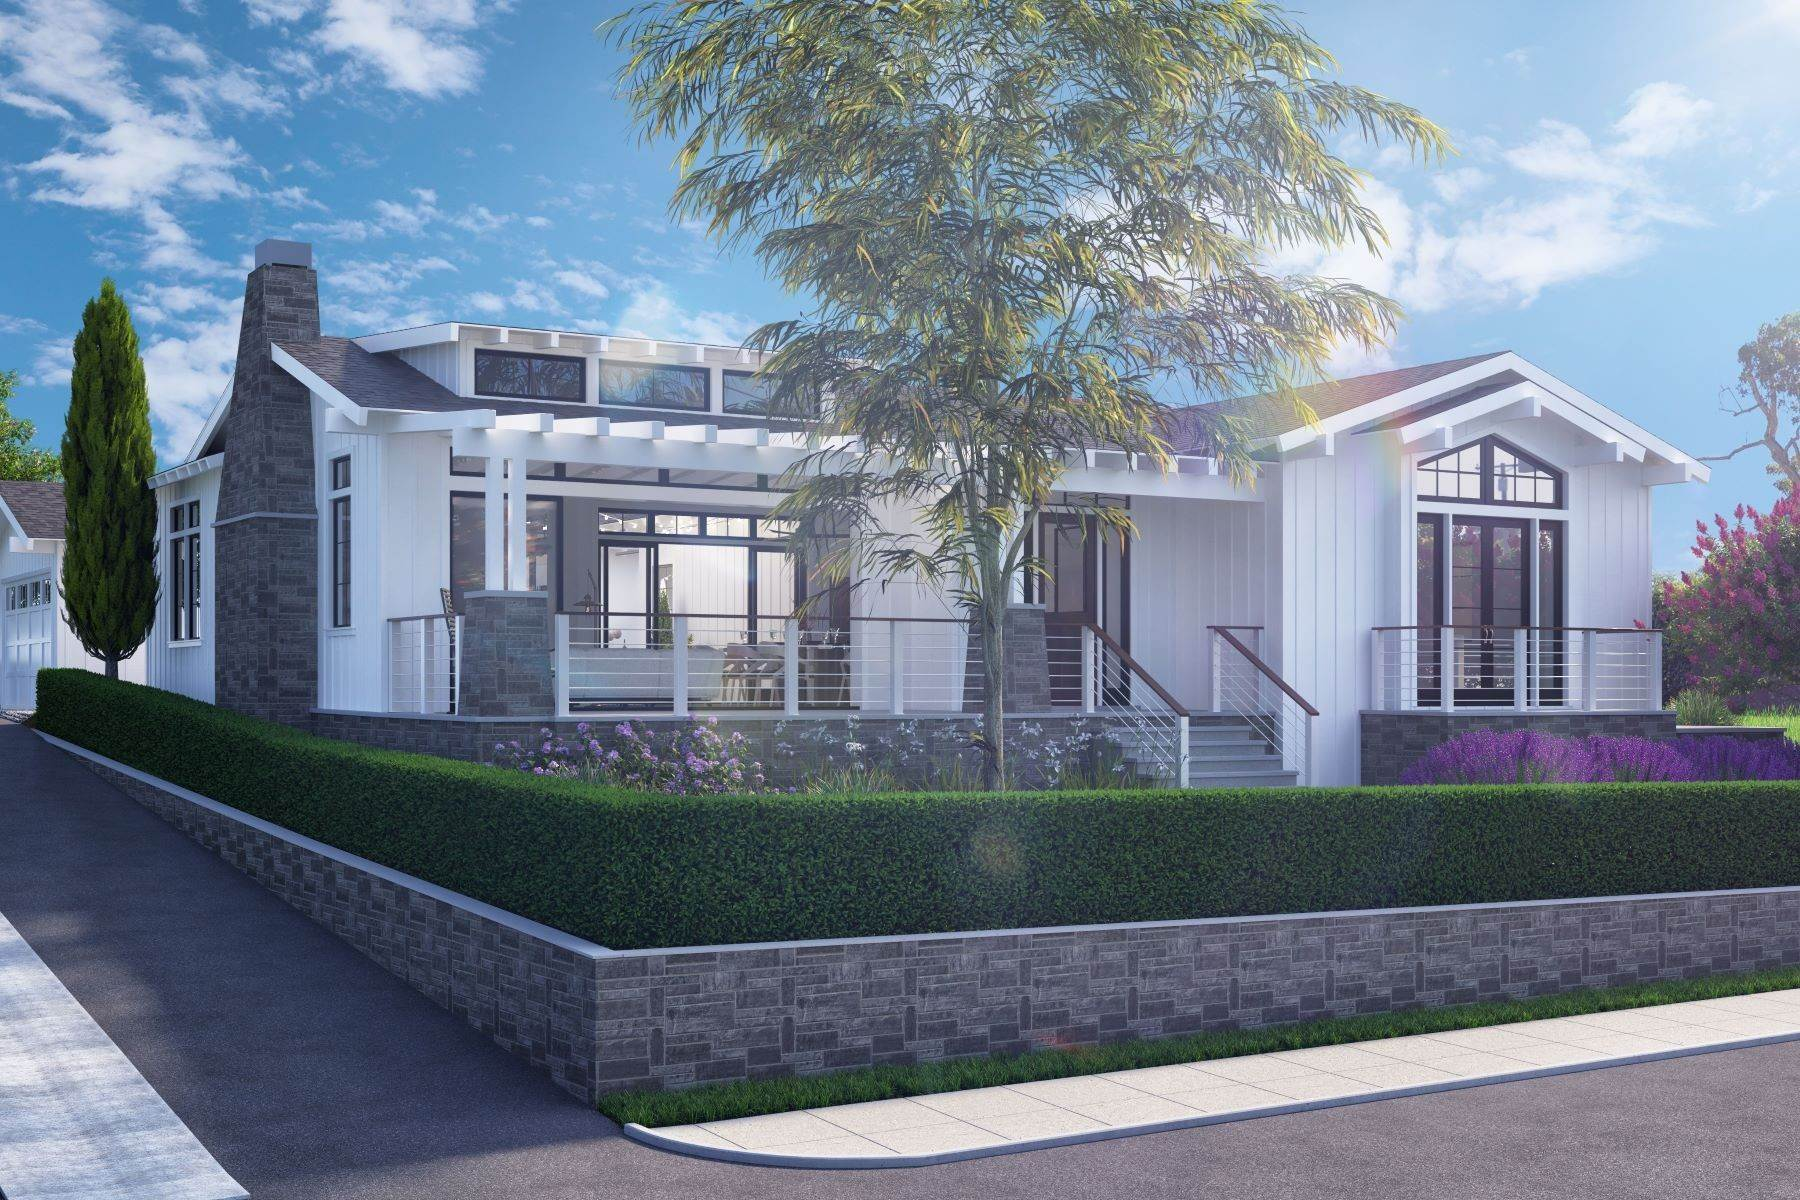 Single Family Homes for Sale at Brand New Coastal California Home 1023 Stratford Court Del Mar, California 92014 United States